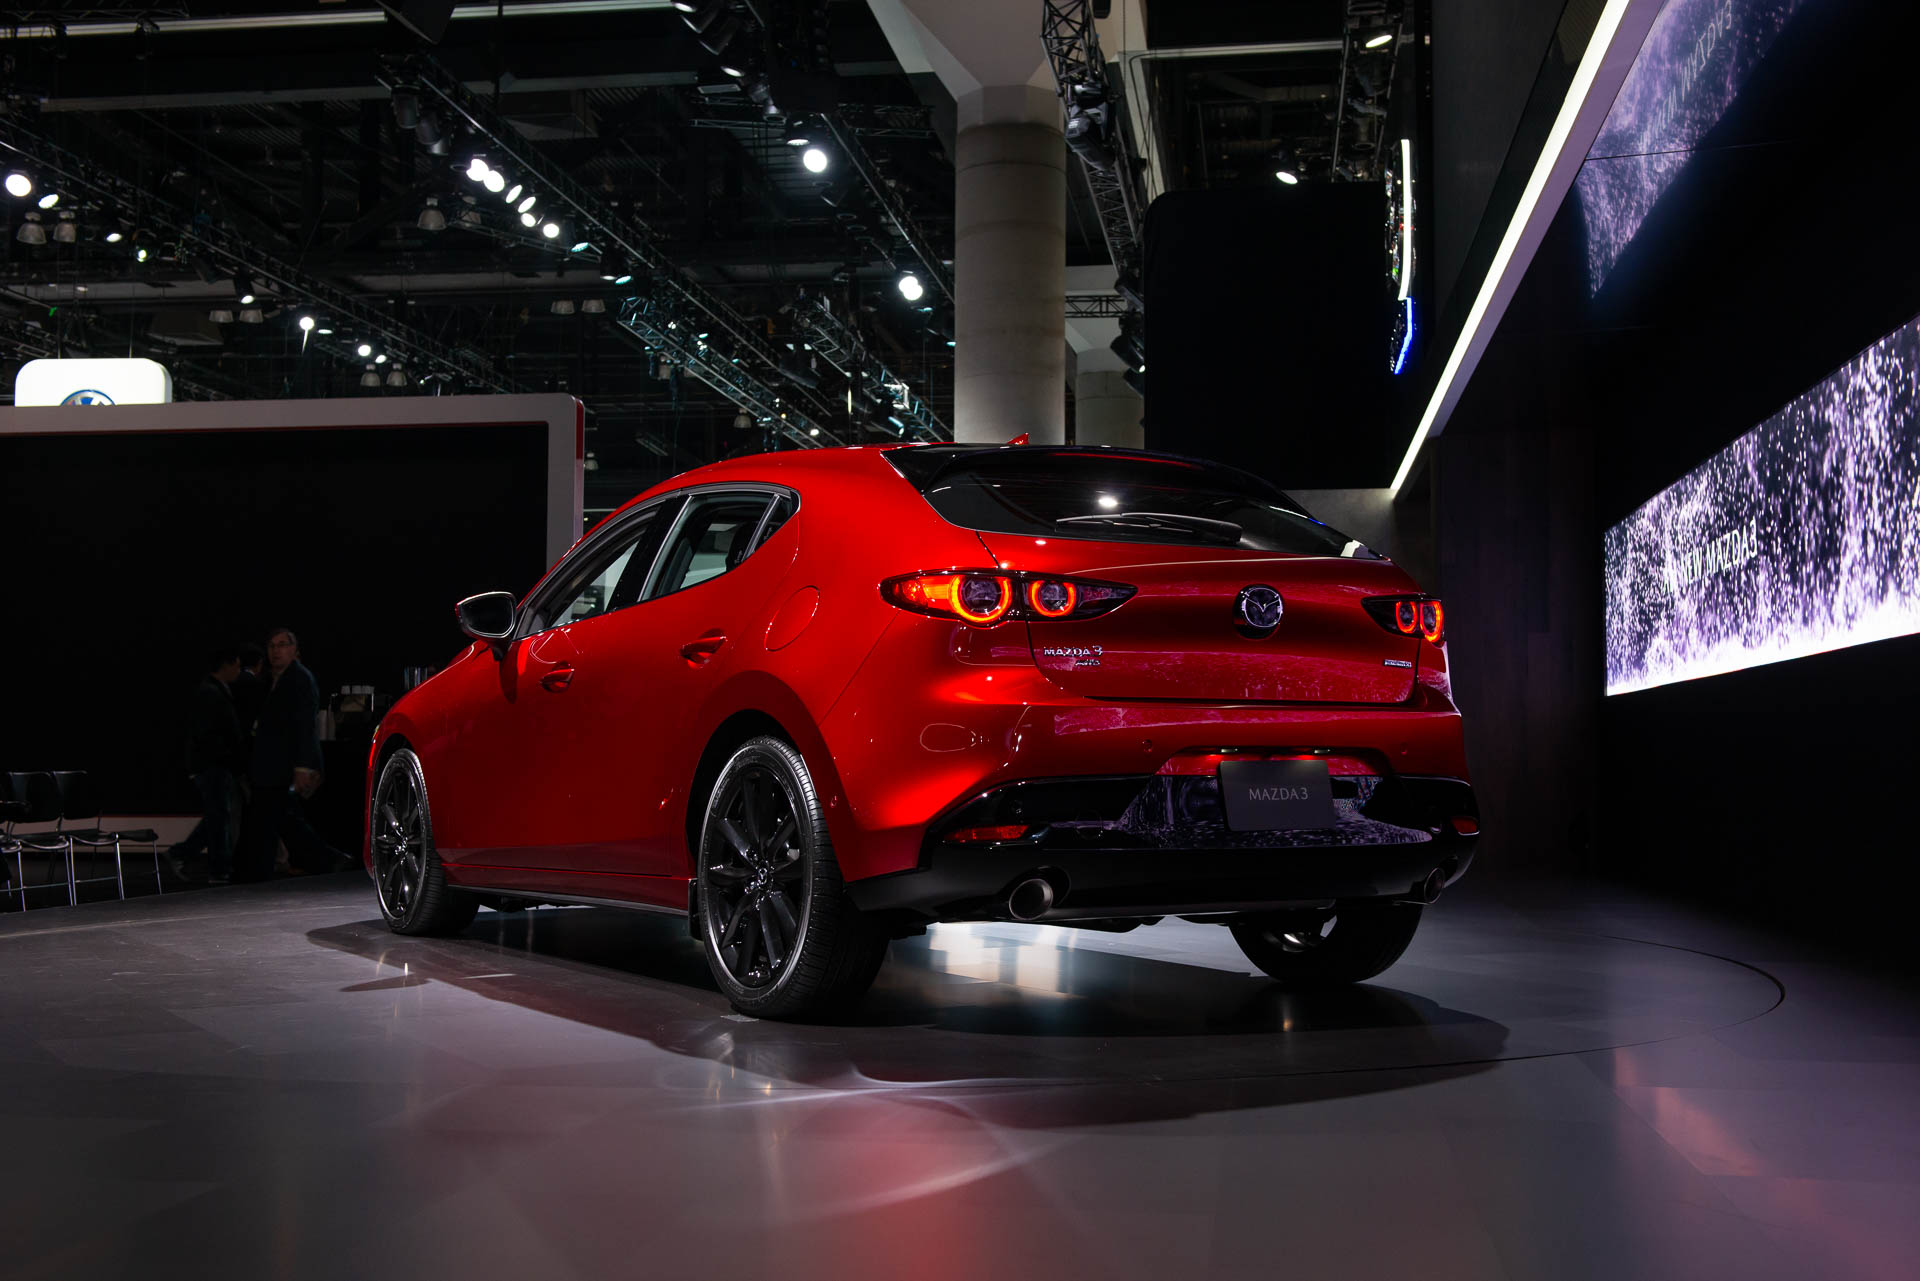 2019 Mazda 3 Sedan And Hatch Aim For An X Factor And That S Not Electric